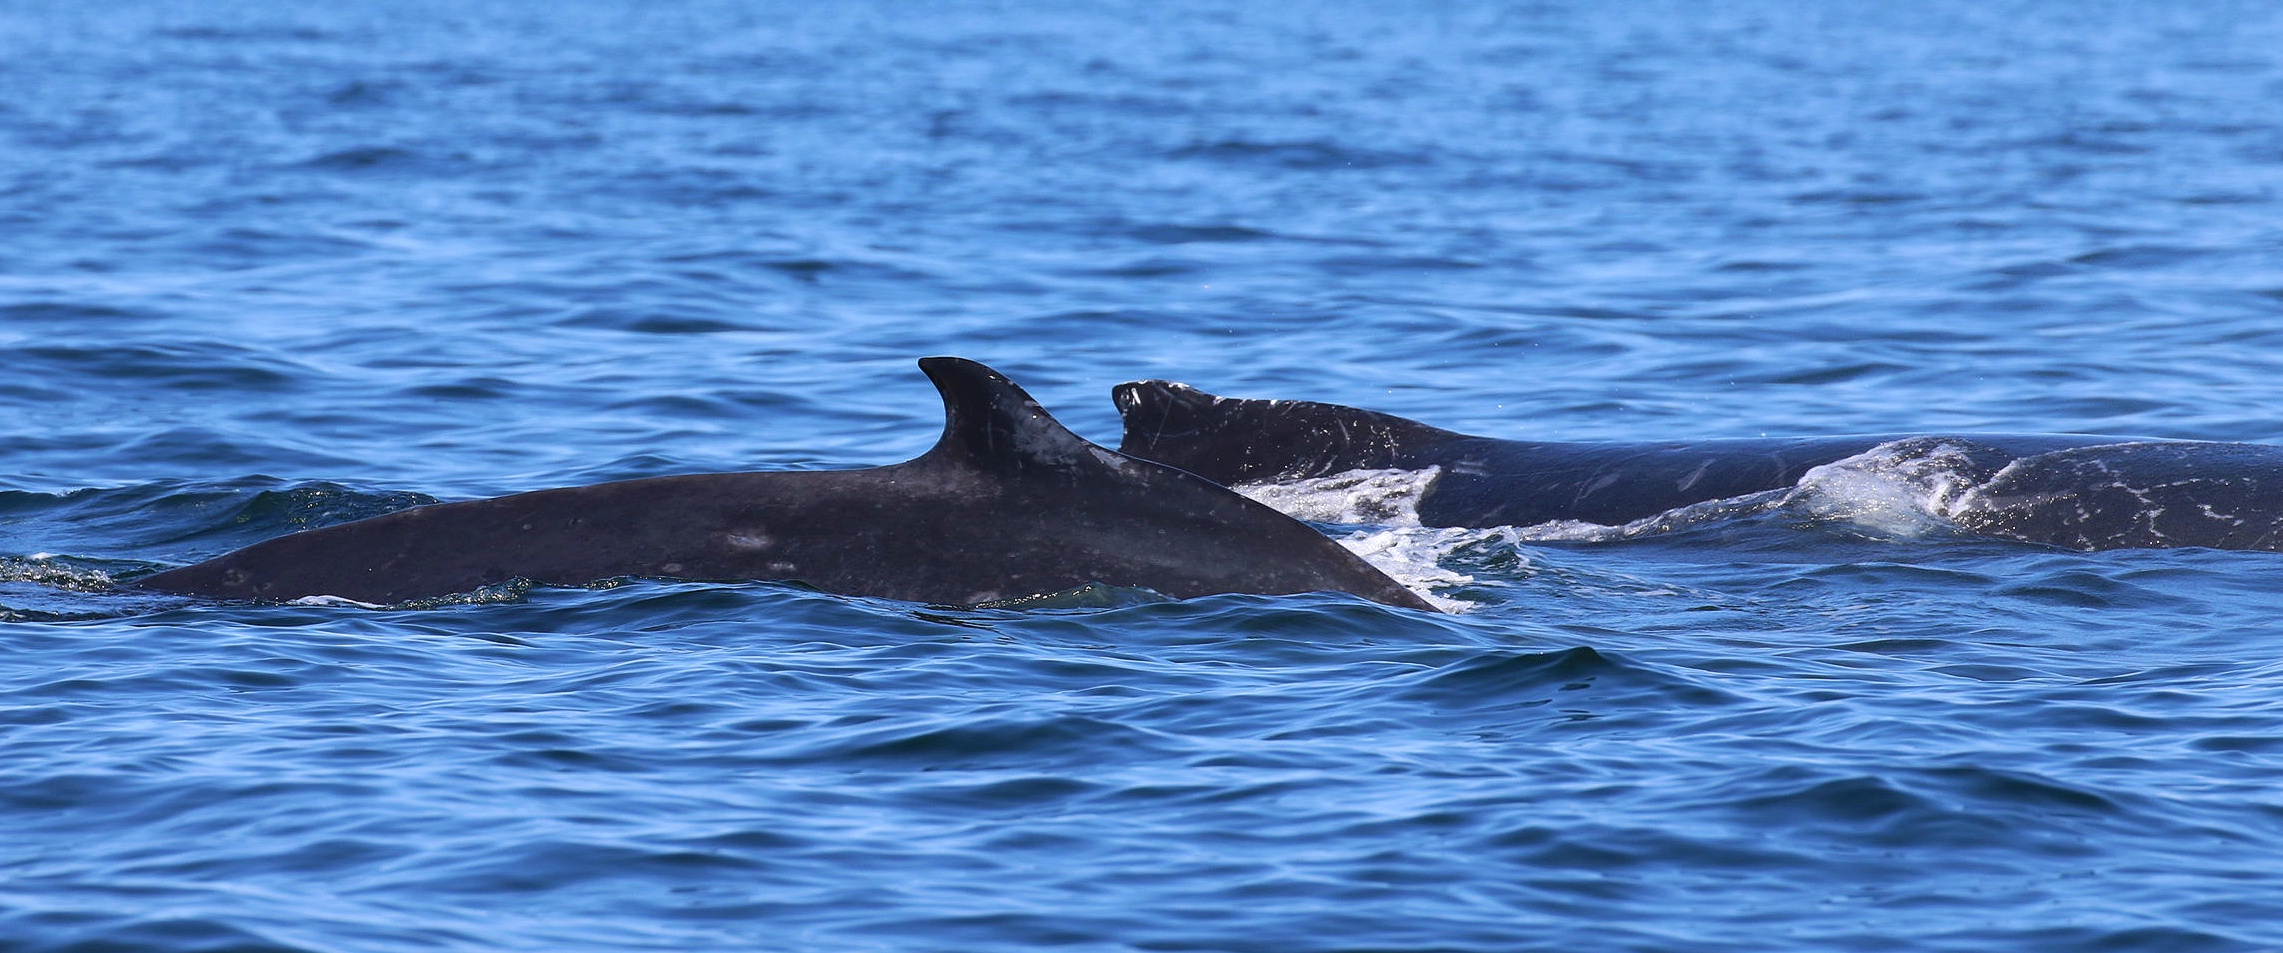 Slate in the front, her calf in the back. Photo by Rebeka Pirker (10.30)